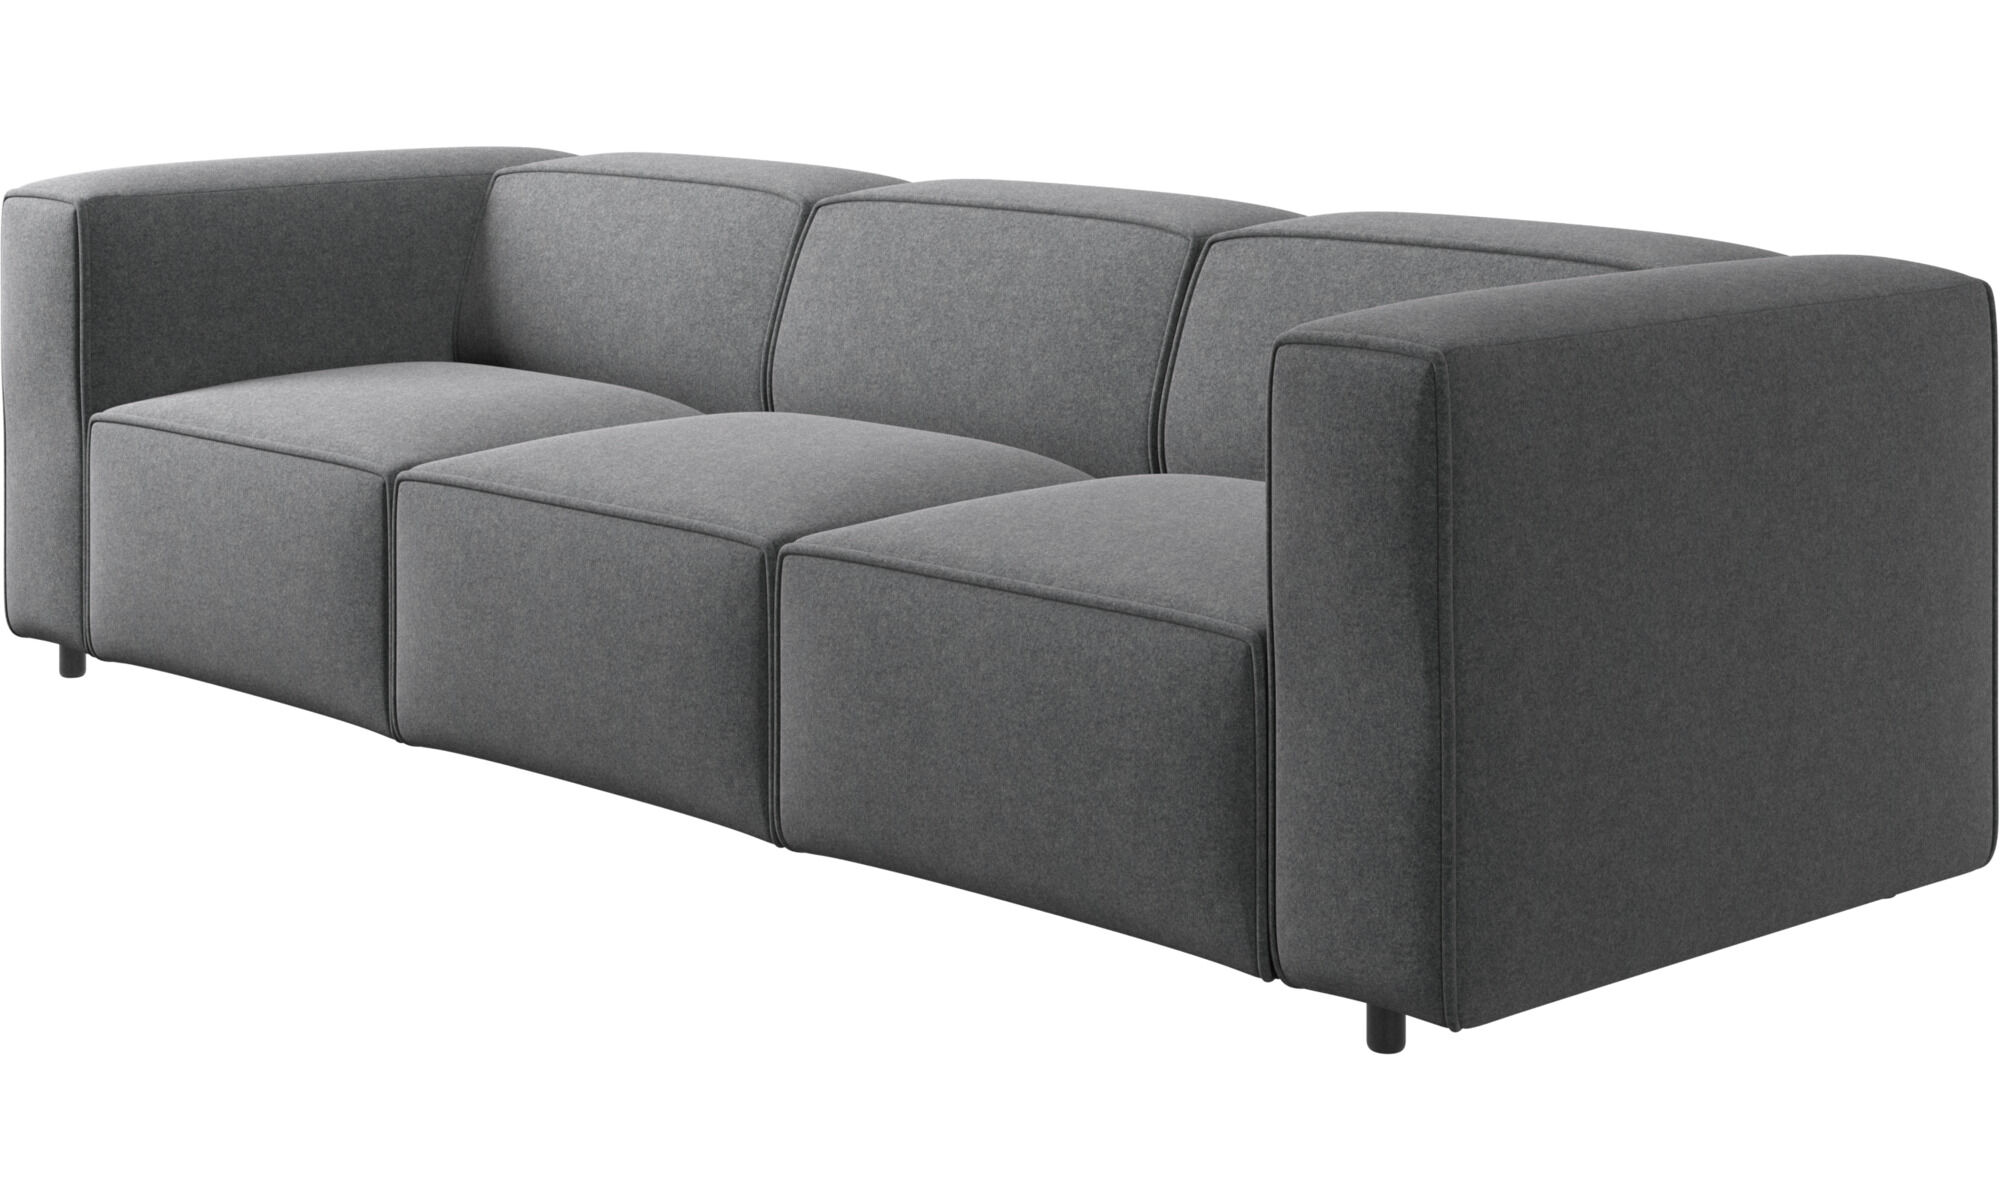 ... 3 Seater Sofas   Carmo Sofa   Gray   Fabric ...